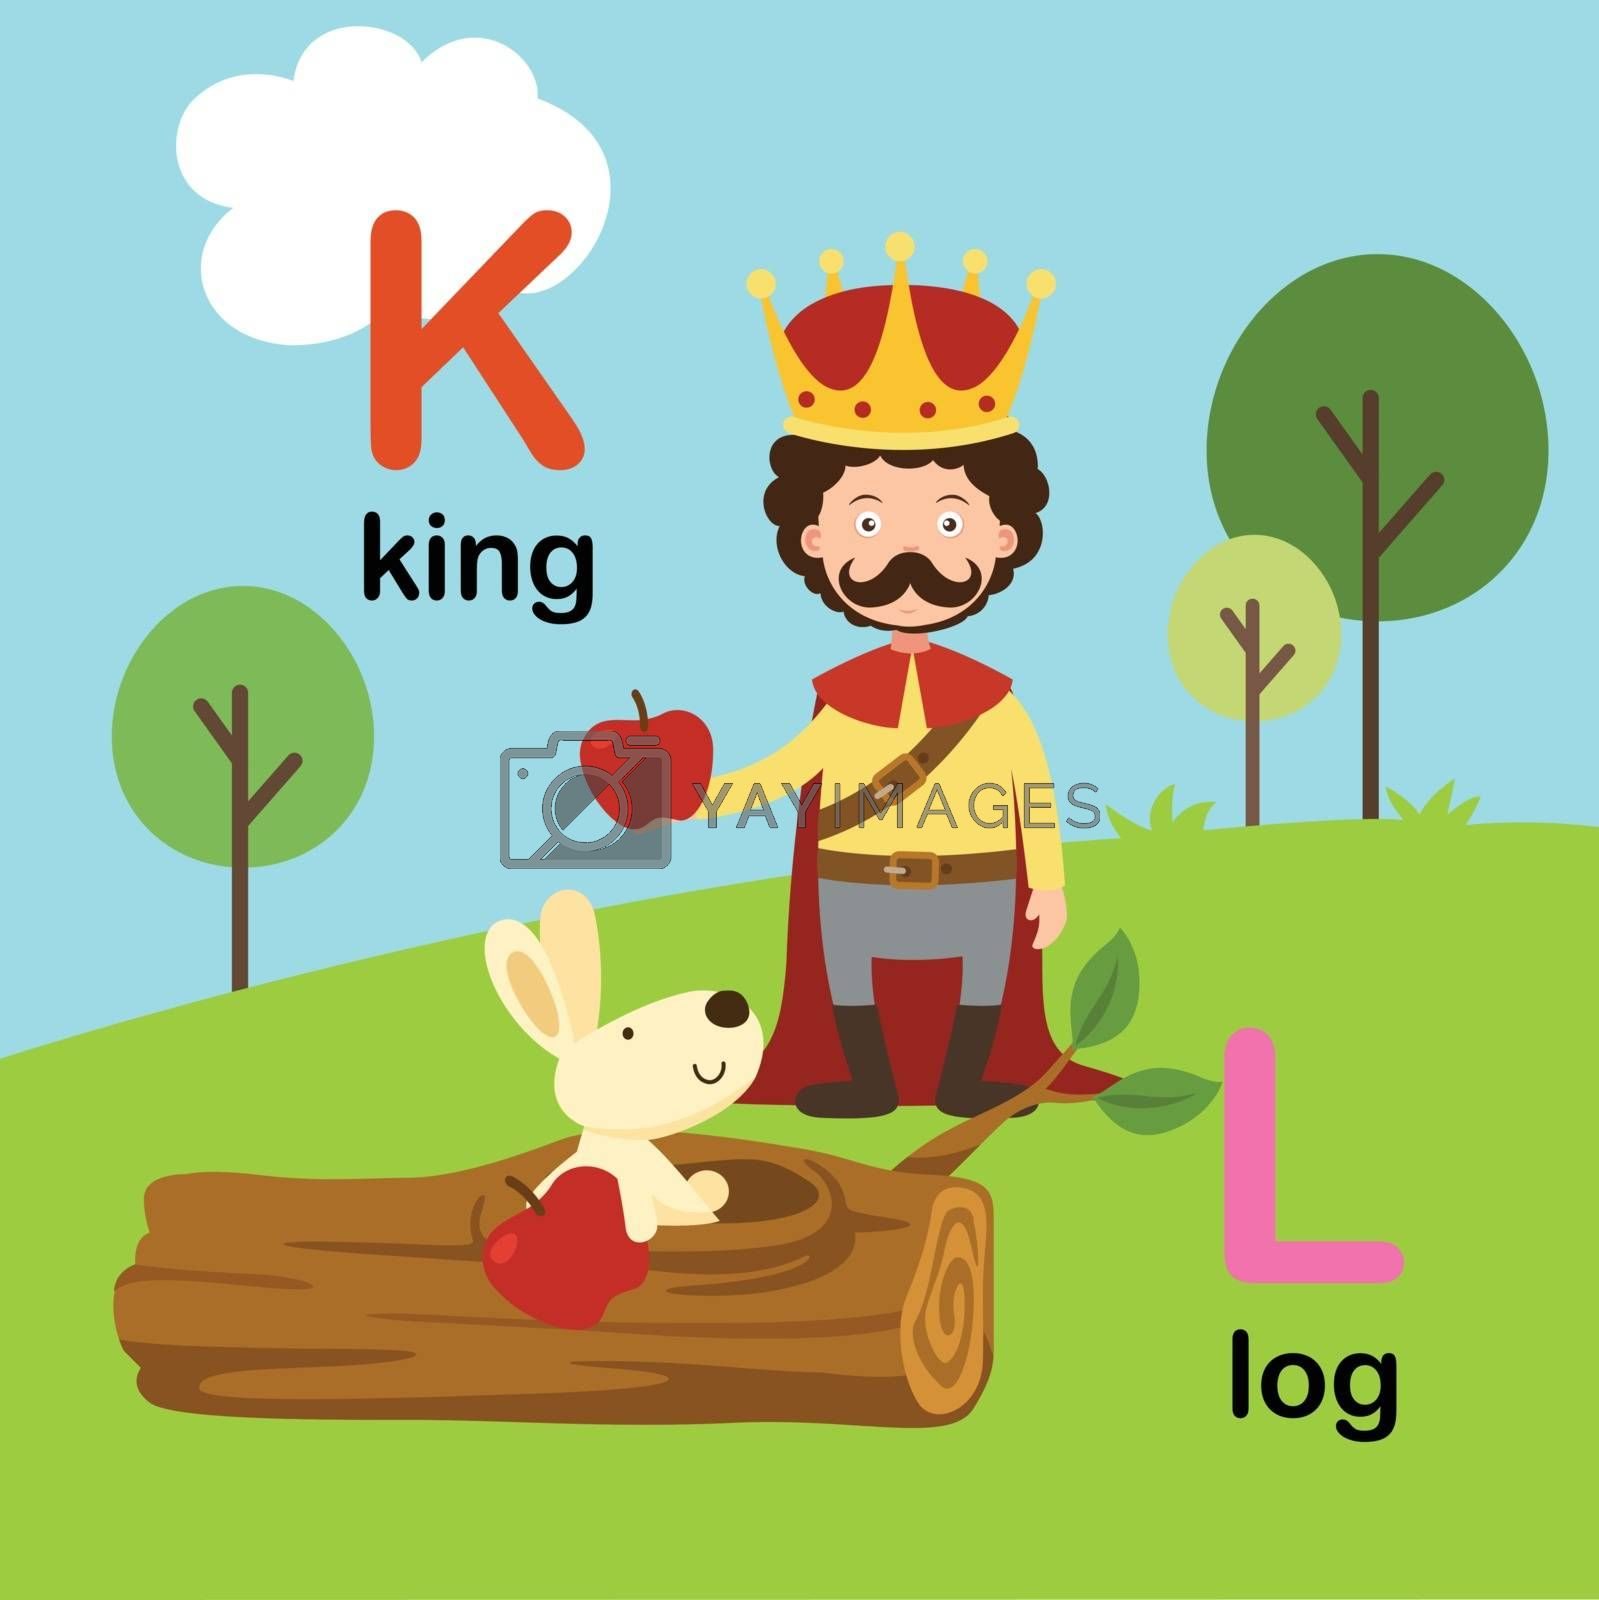 Alphabet Letter K-king,L-log,vector illustration